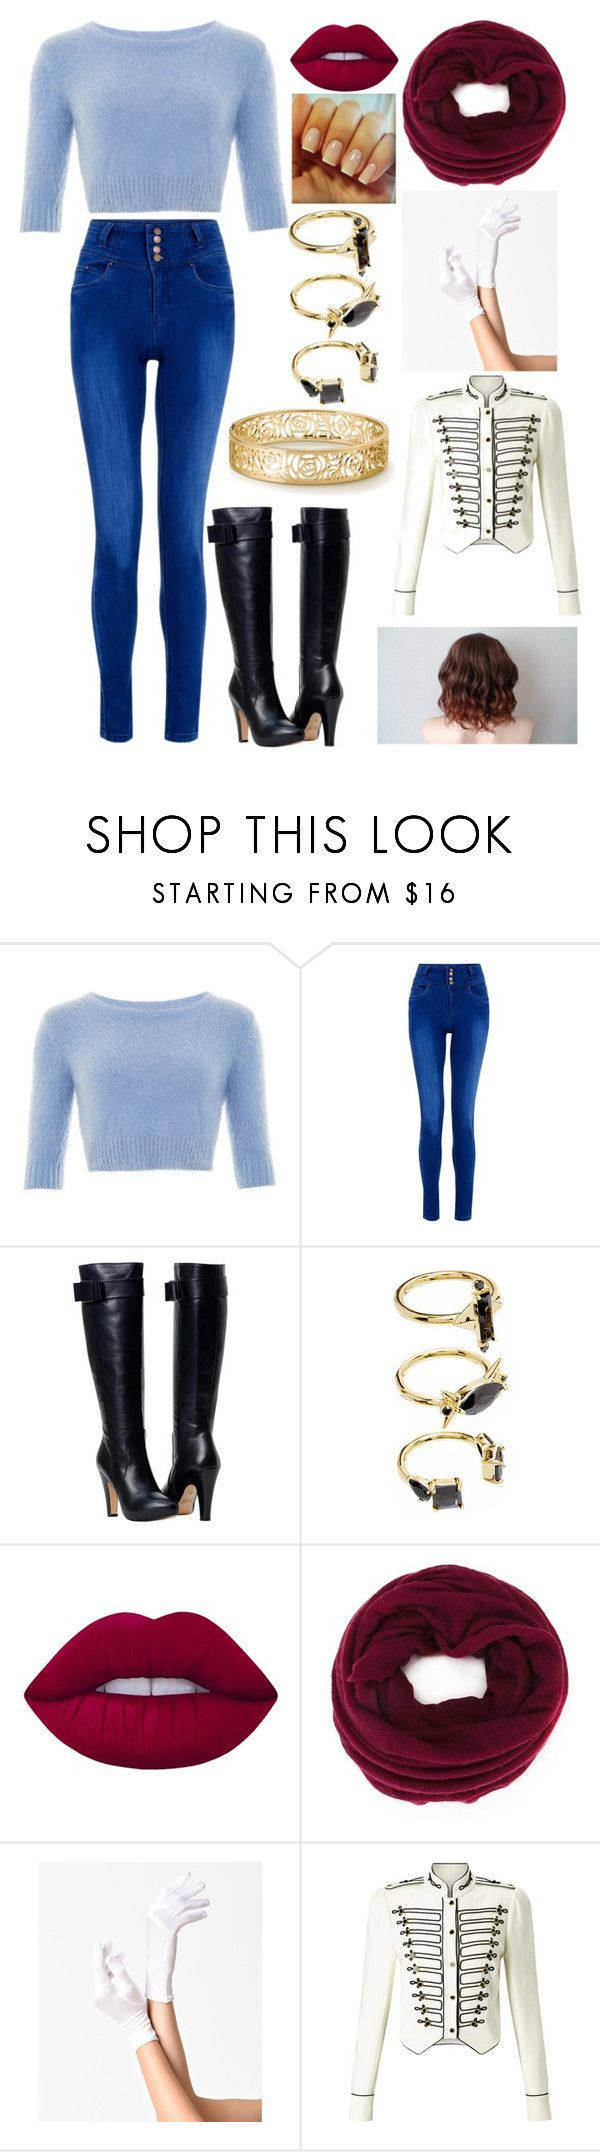 """Disney Villains Modernized: Prince Hans"" by kiara-fleming ❤ liked on Polyvore featuring Noir Jewelry, Lime Crime, Isabel Marant, Somerset by Alice Temperley and modern"